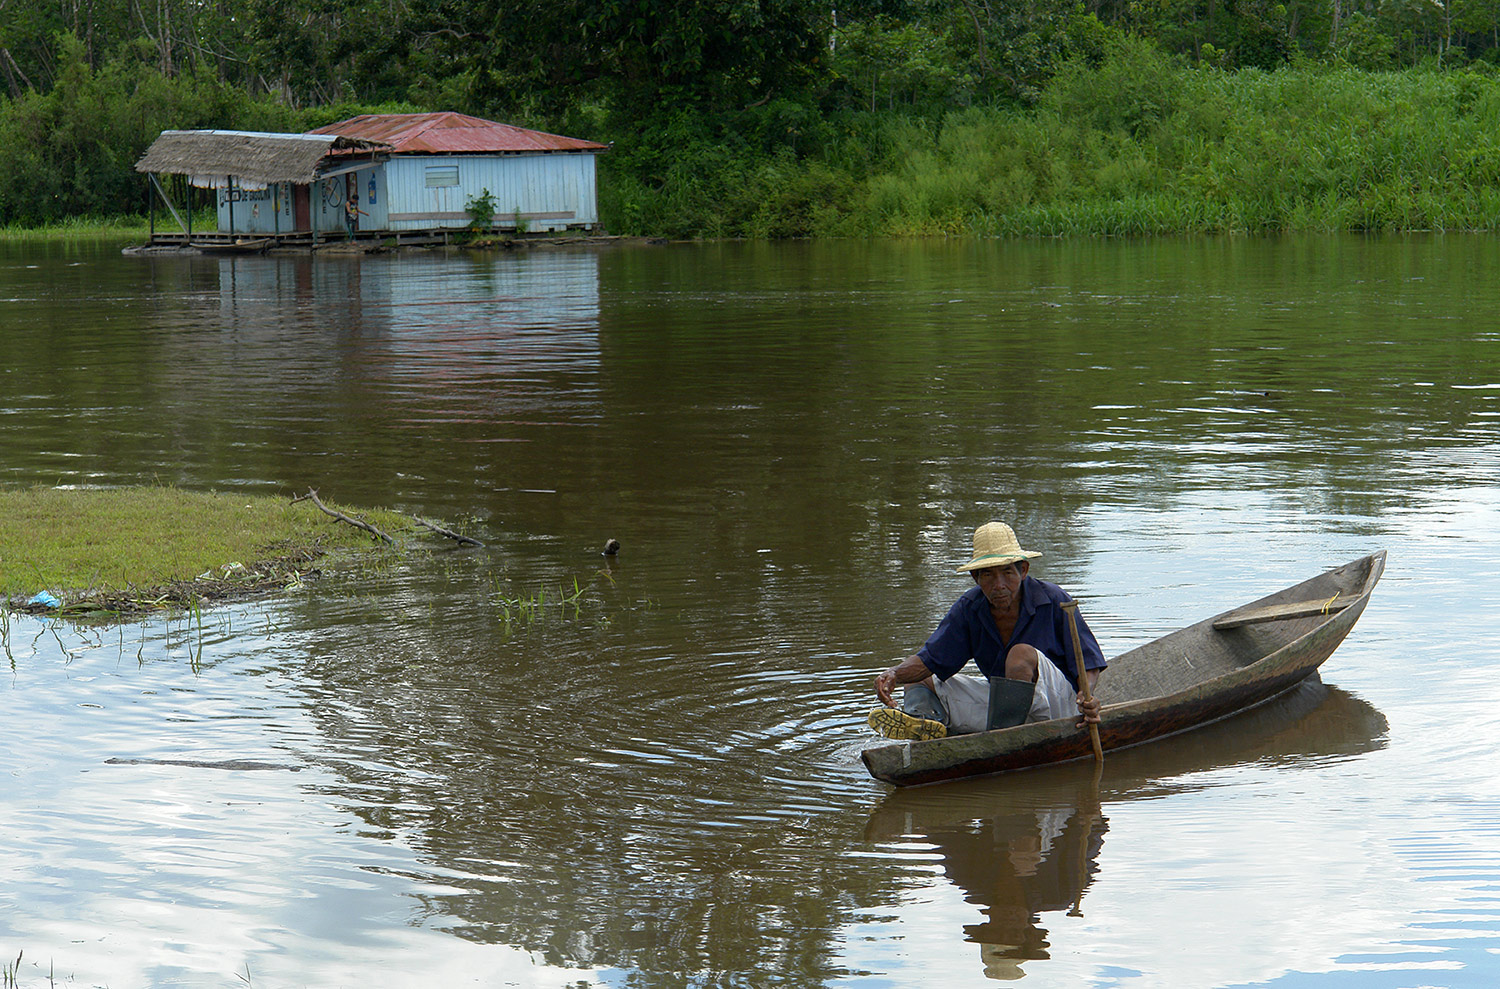 Photograph of an elderly fisherman in a hand-carved canoe floating on the muddy waters of the Amazon.